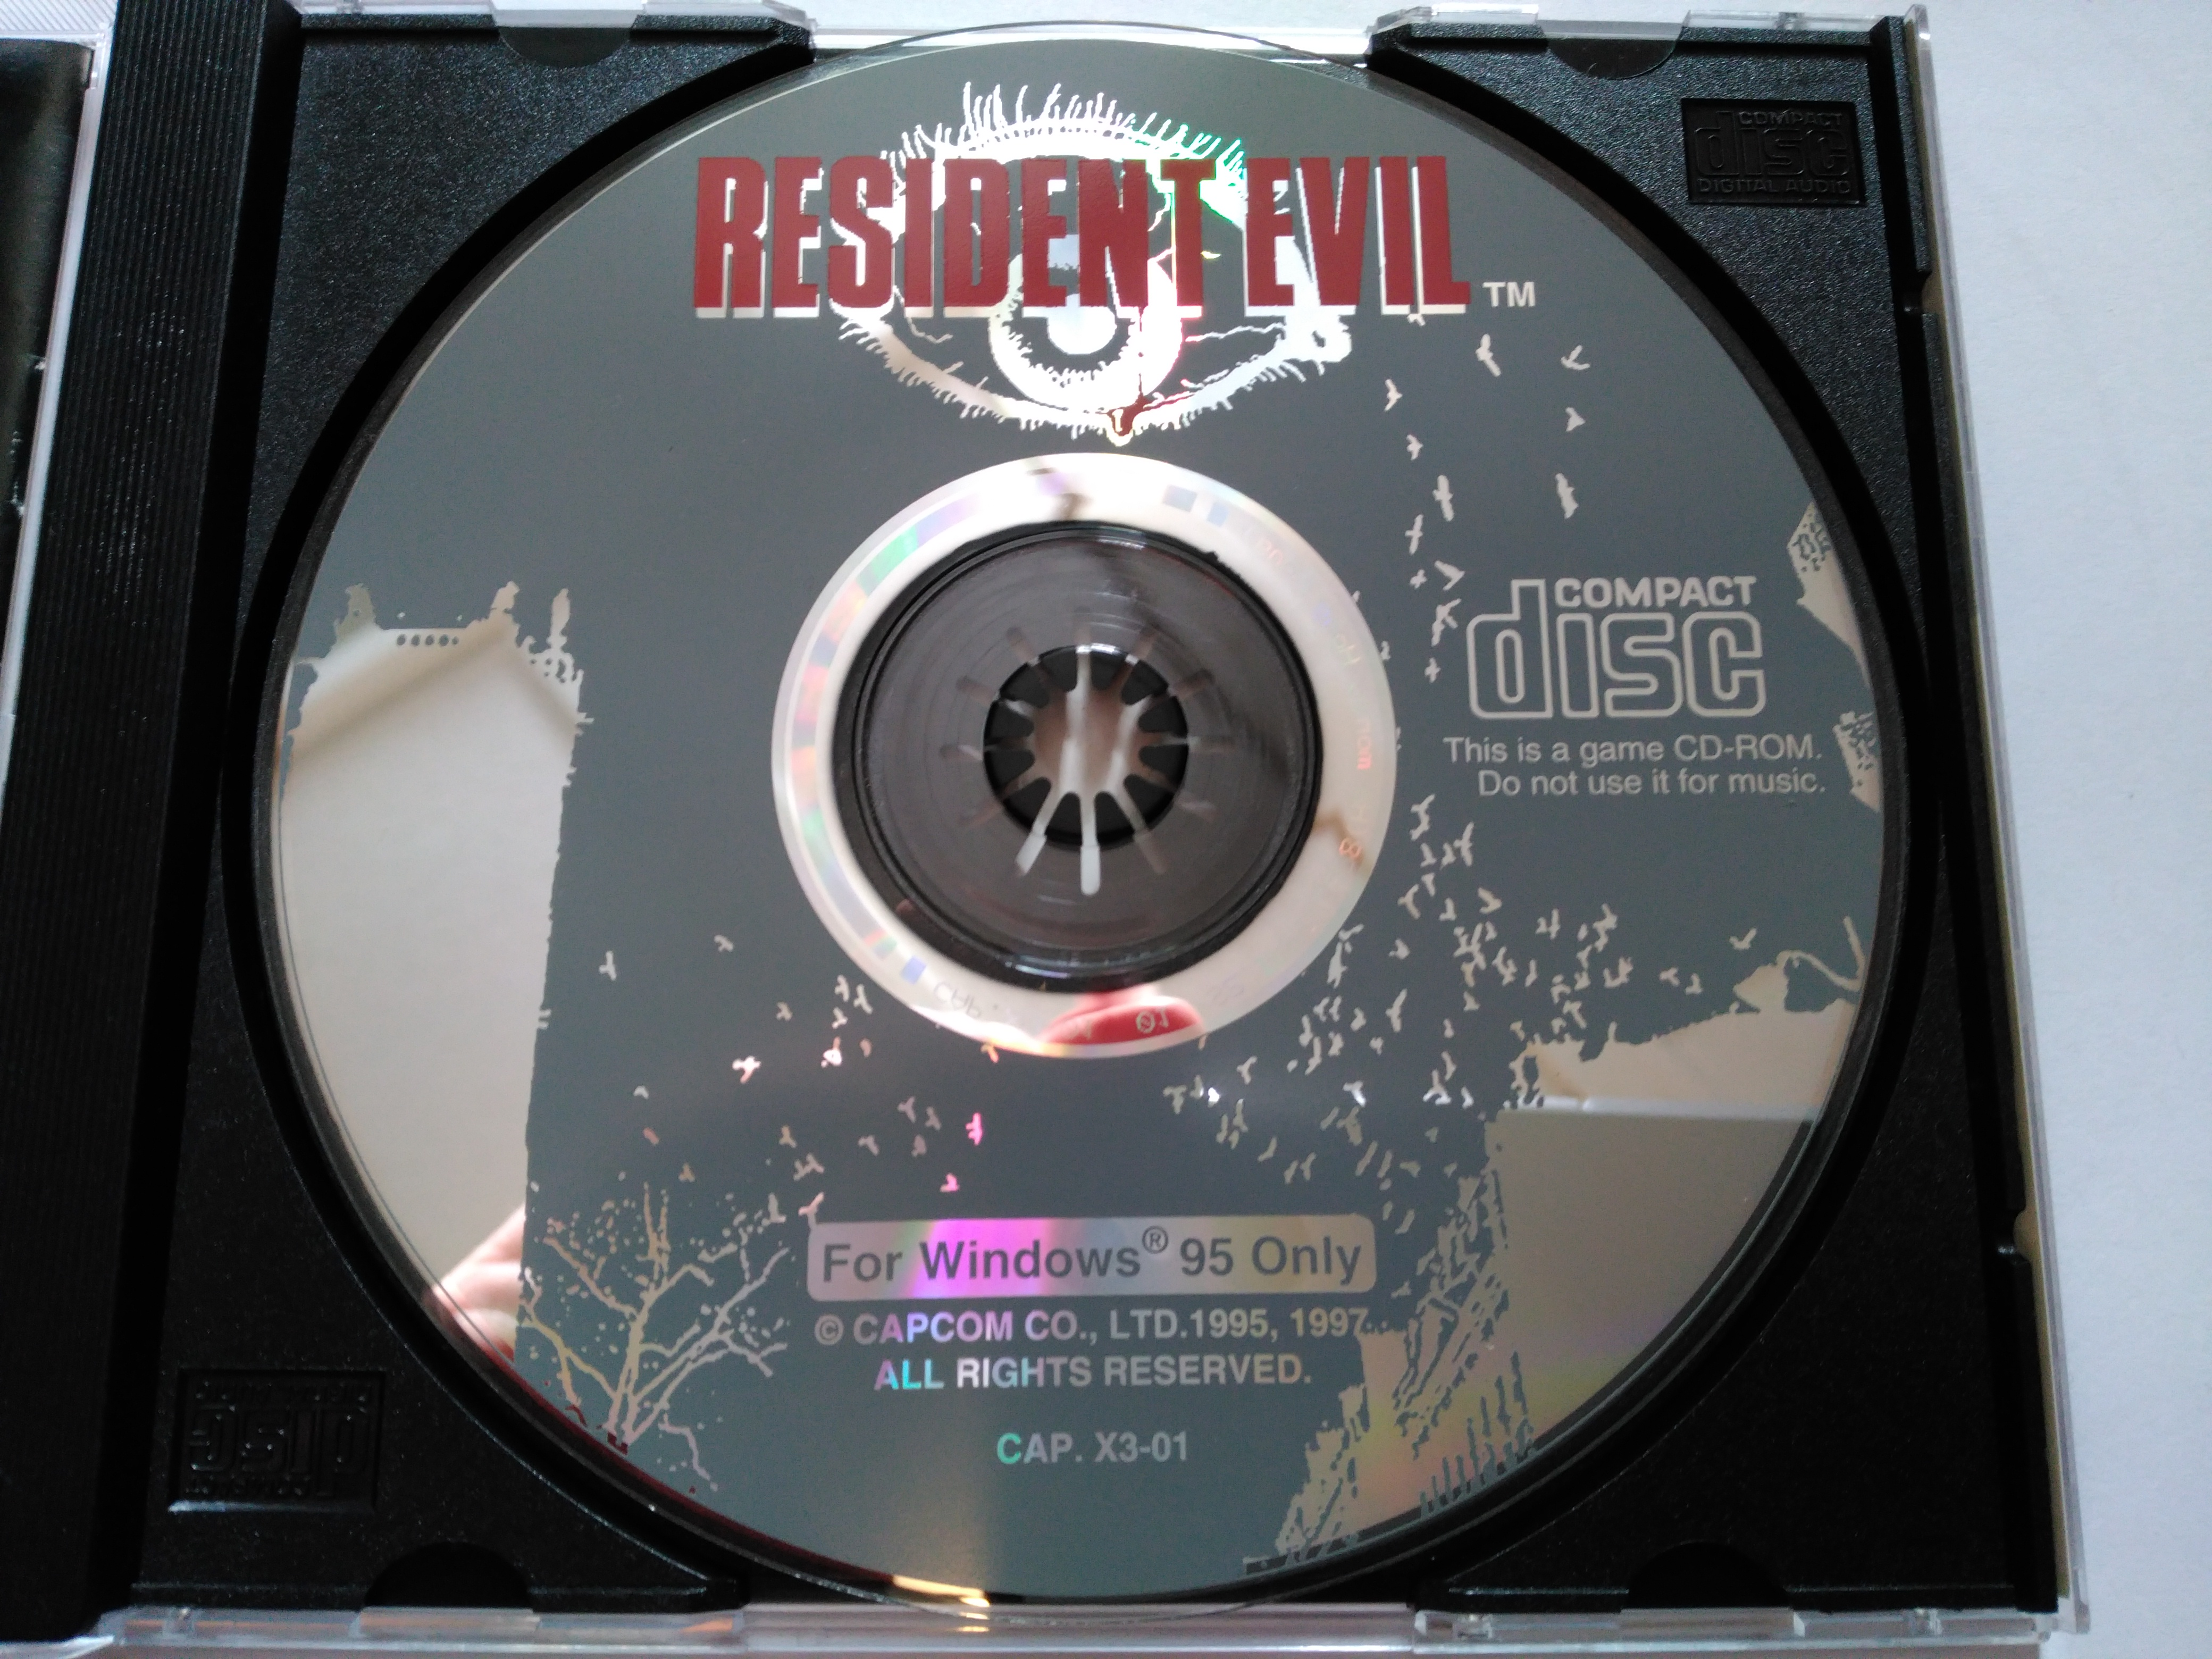 I found this Rare Resident Evil Windows 95 Game - Help me